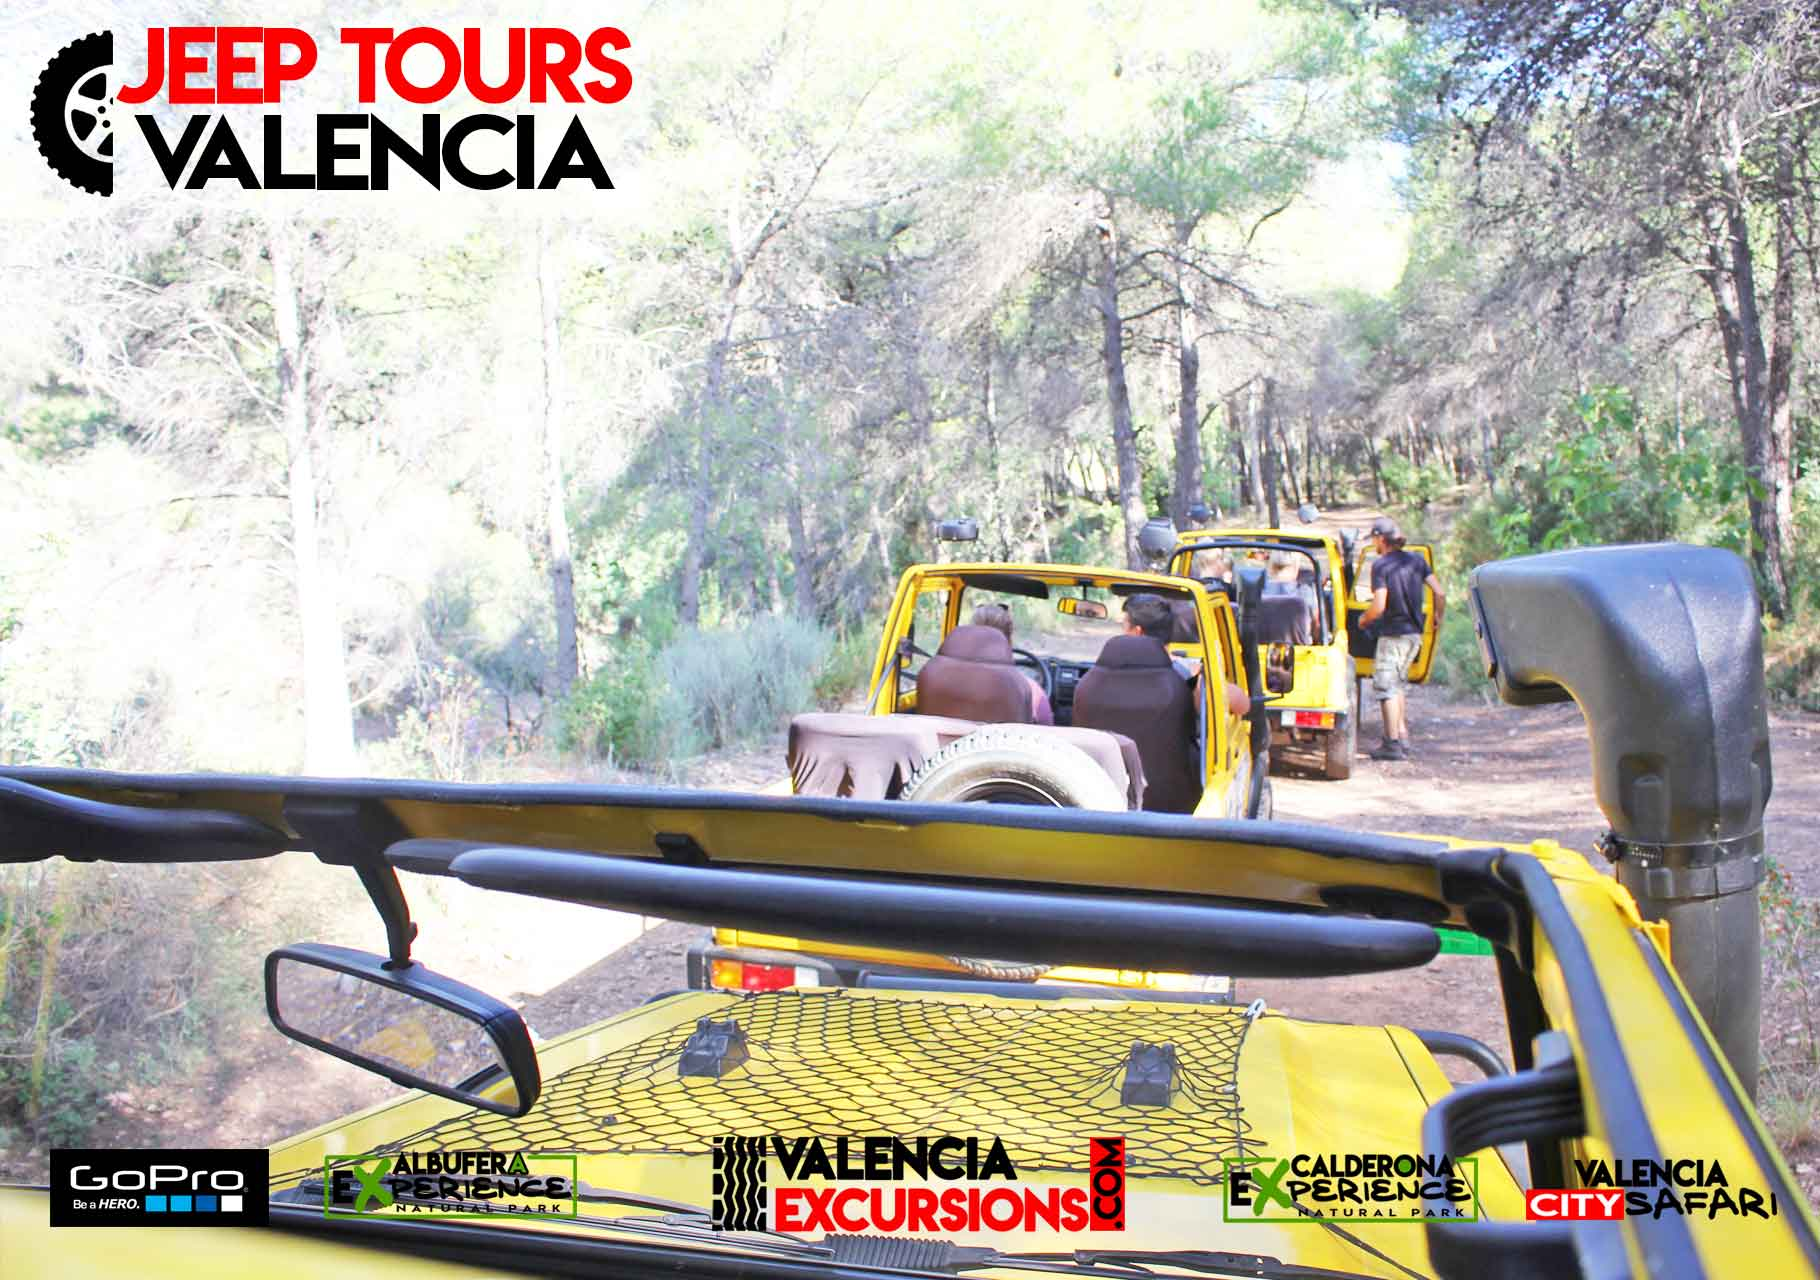 Off road tour in Valencia